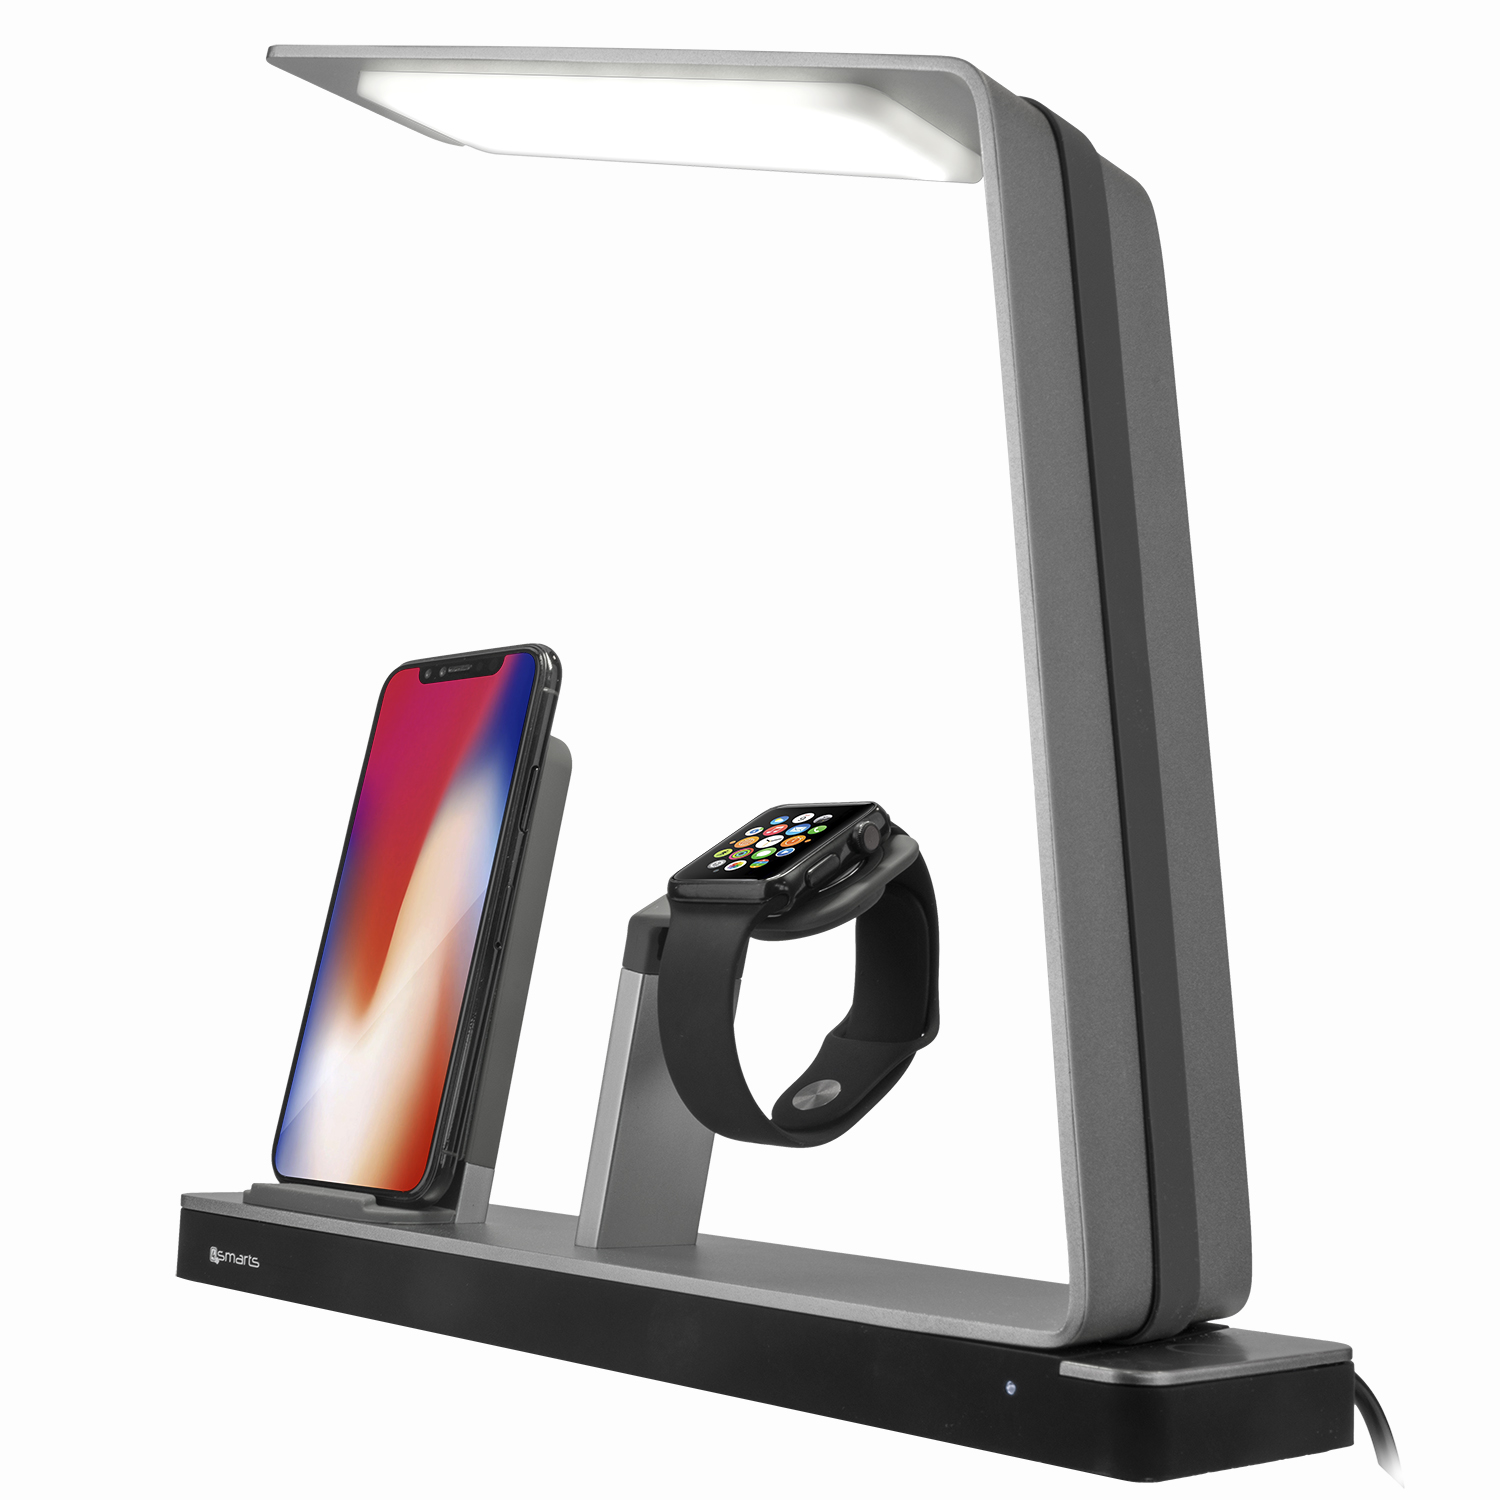 4smarts Inductive Charging Station with LED Lamp TwinDock Wireless - поставка за безжично захранване за iPhone и Apple Watch с LED лампа (черен)